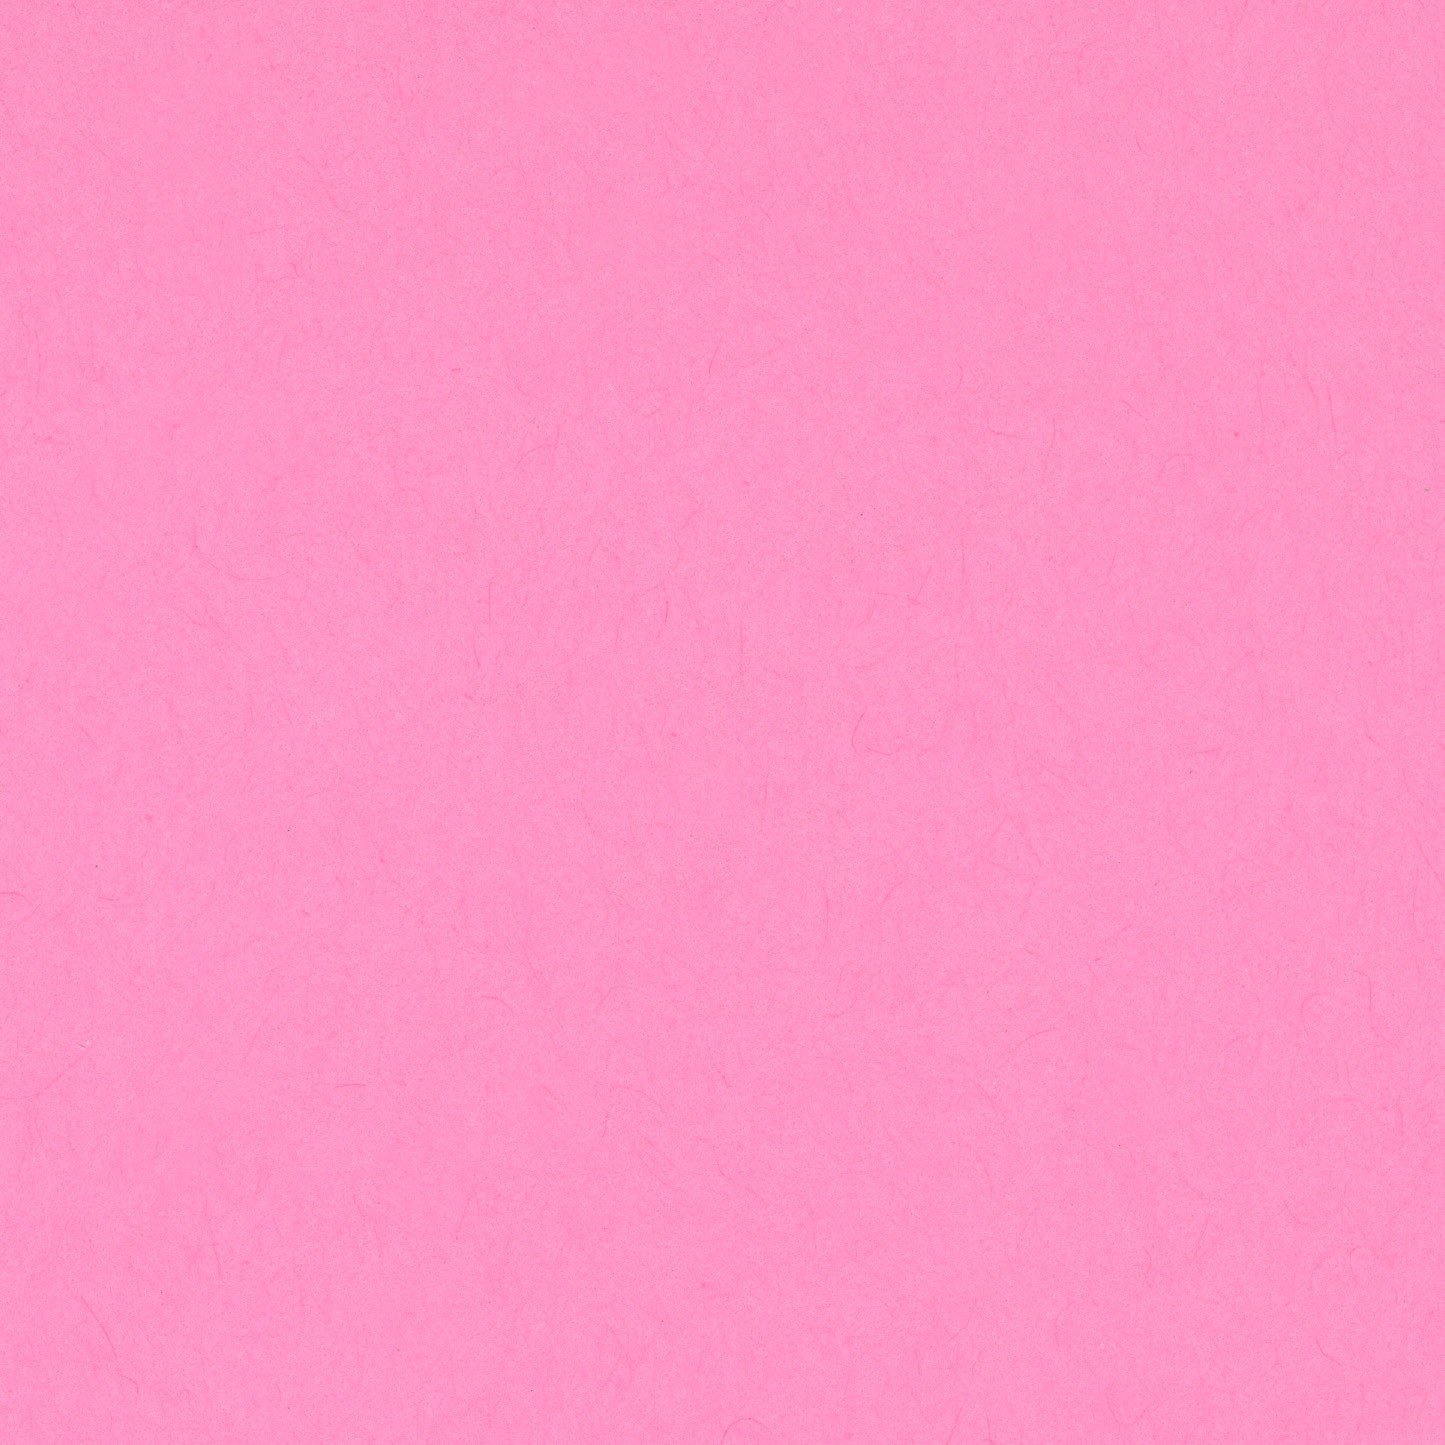 Pink - Square Sizes | ...